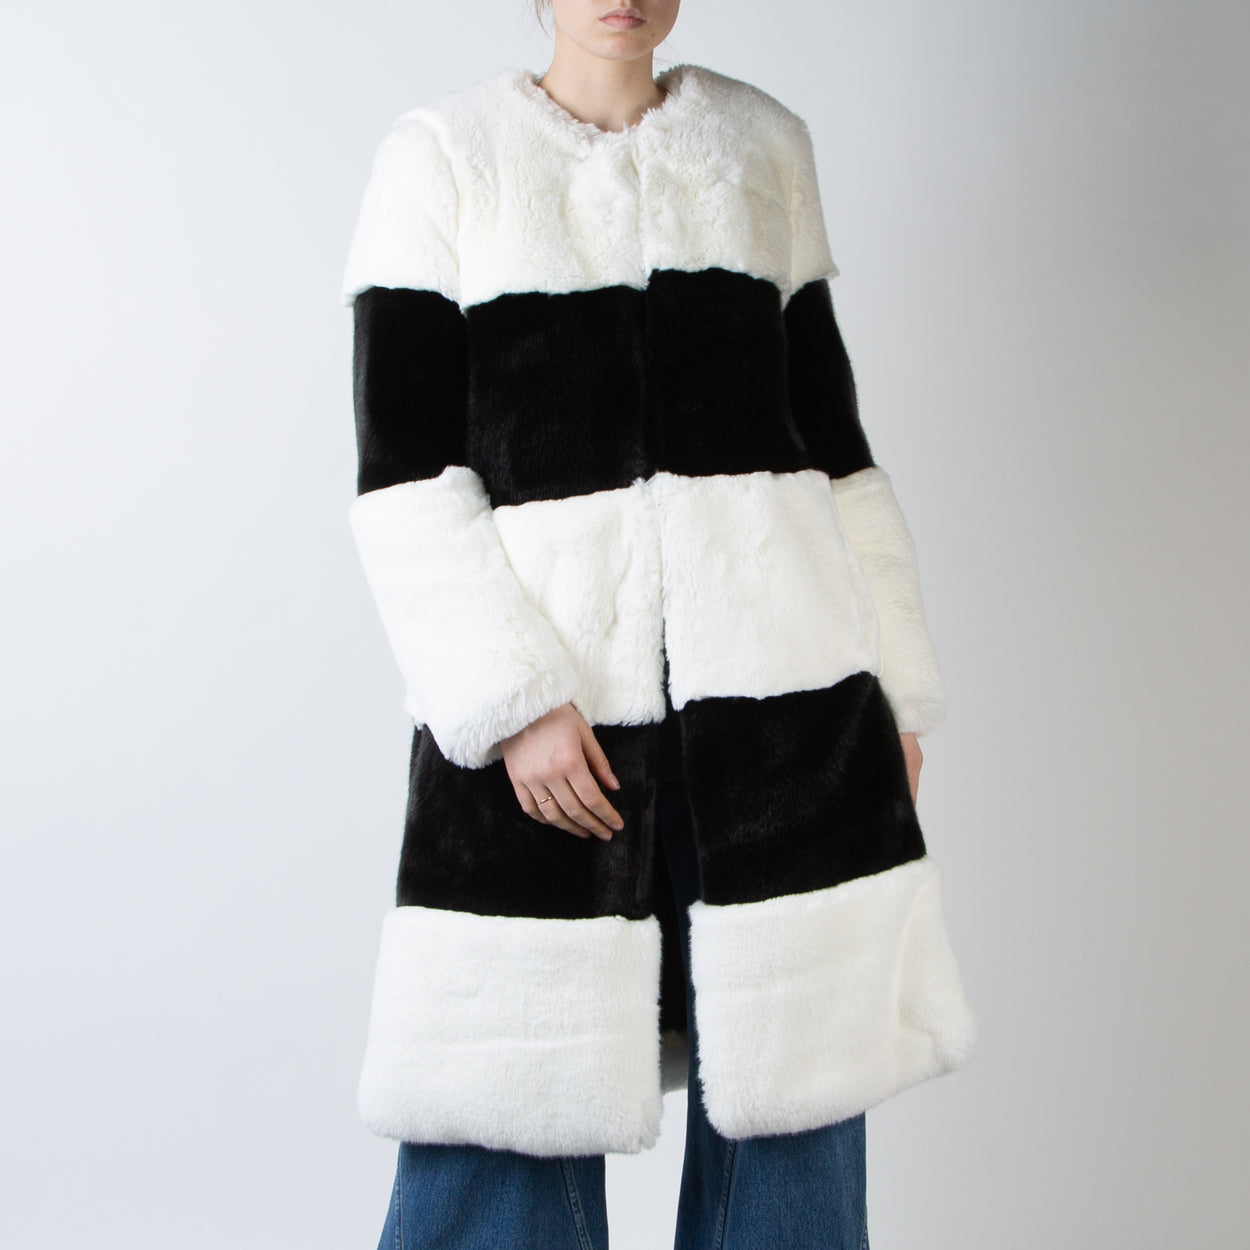 Ona Fur Coat, black & white